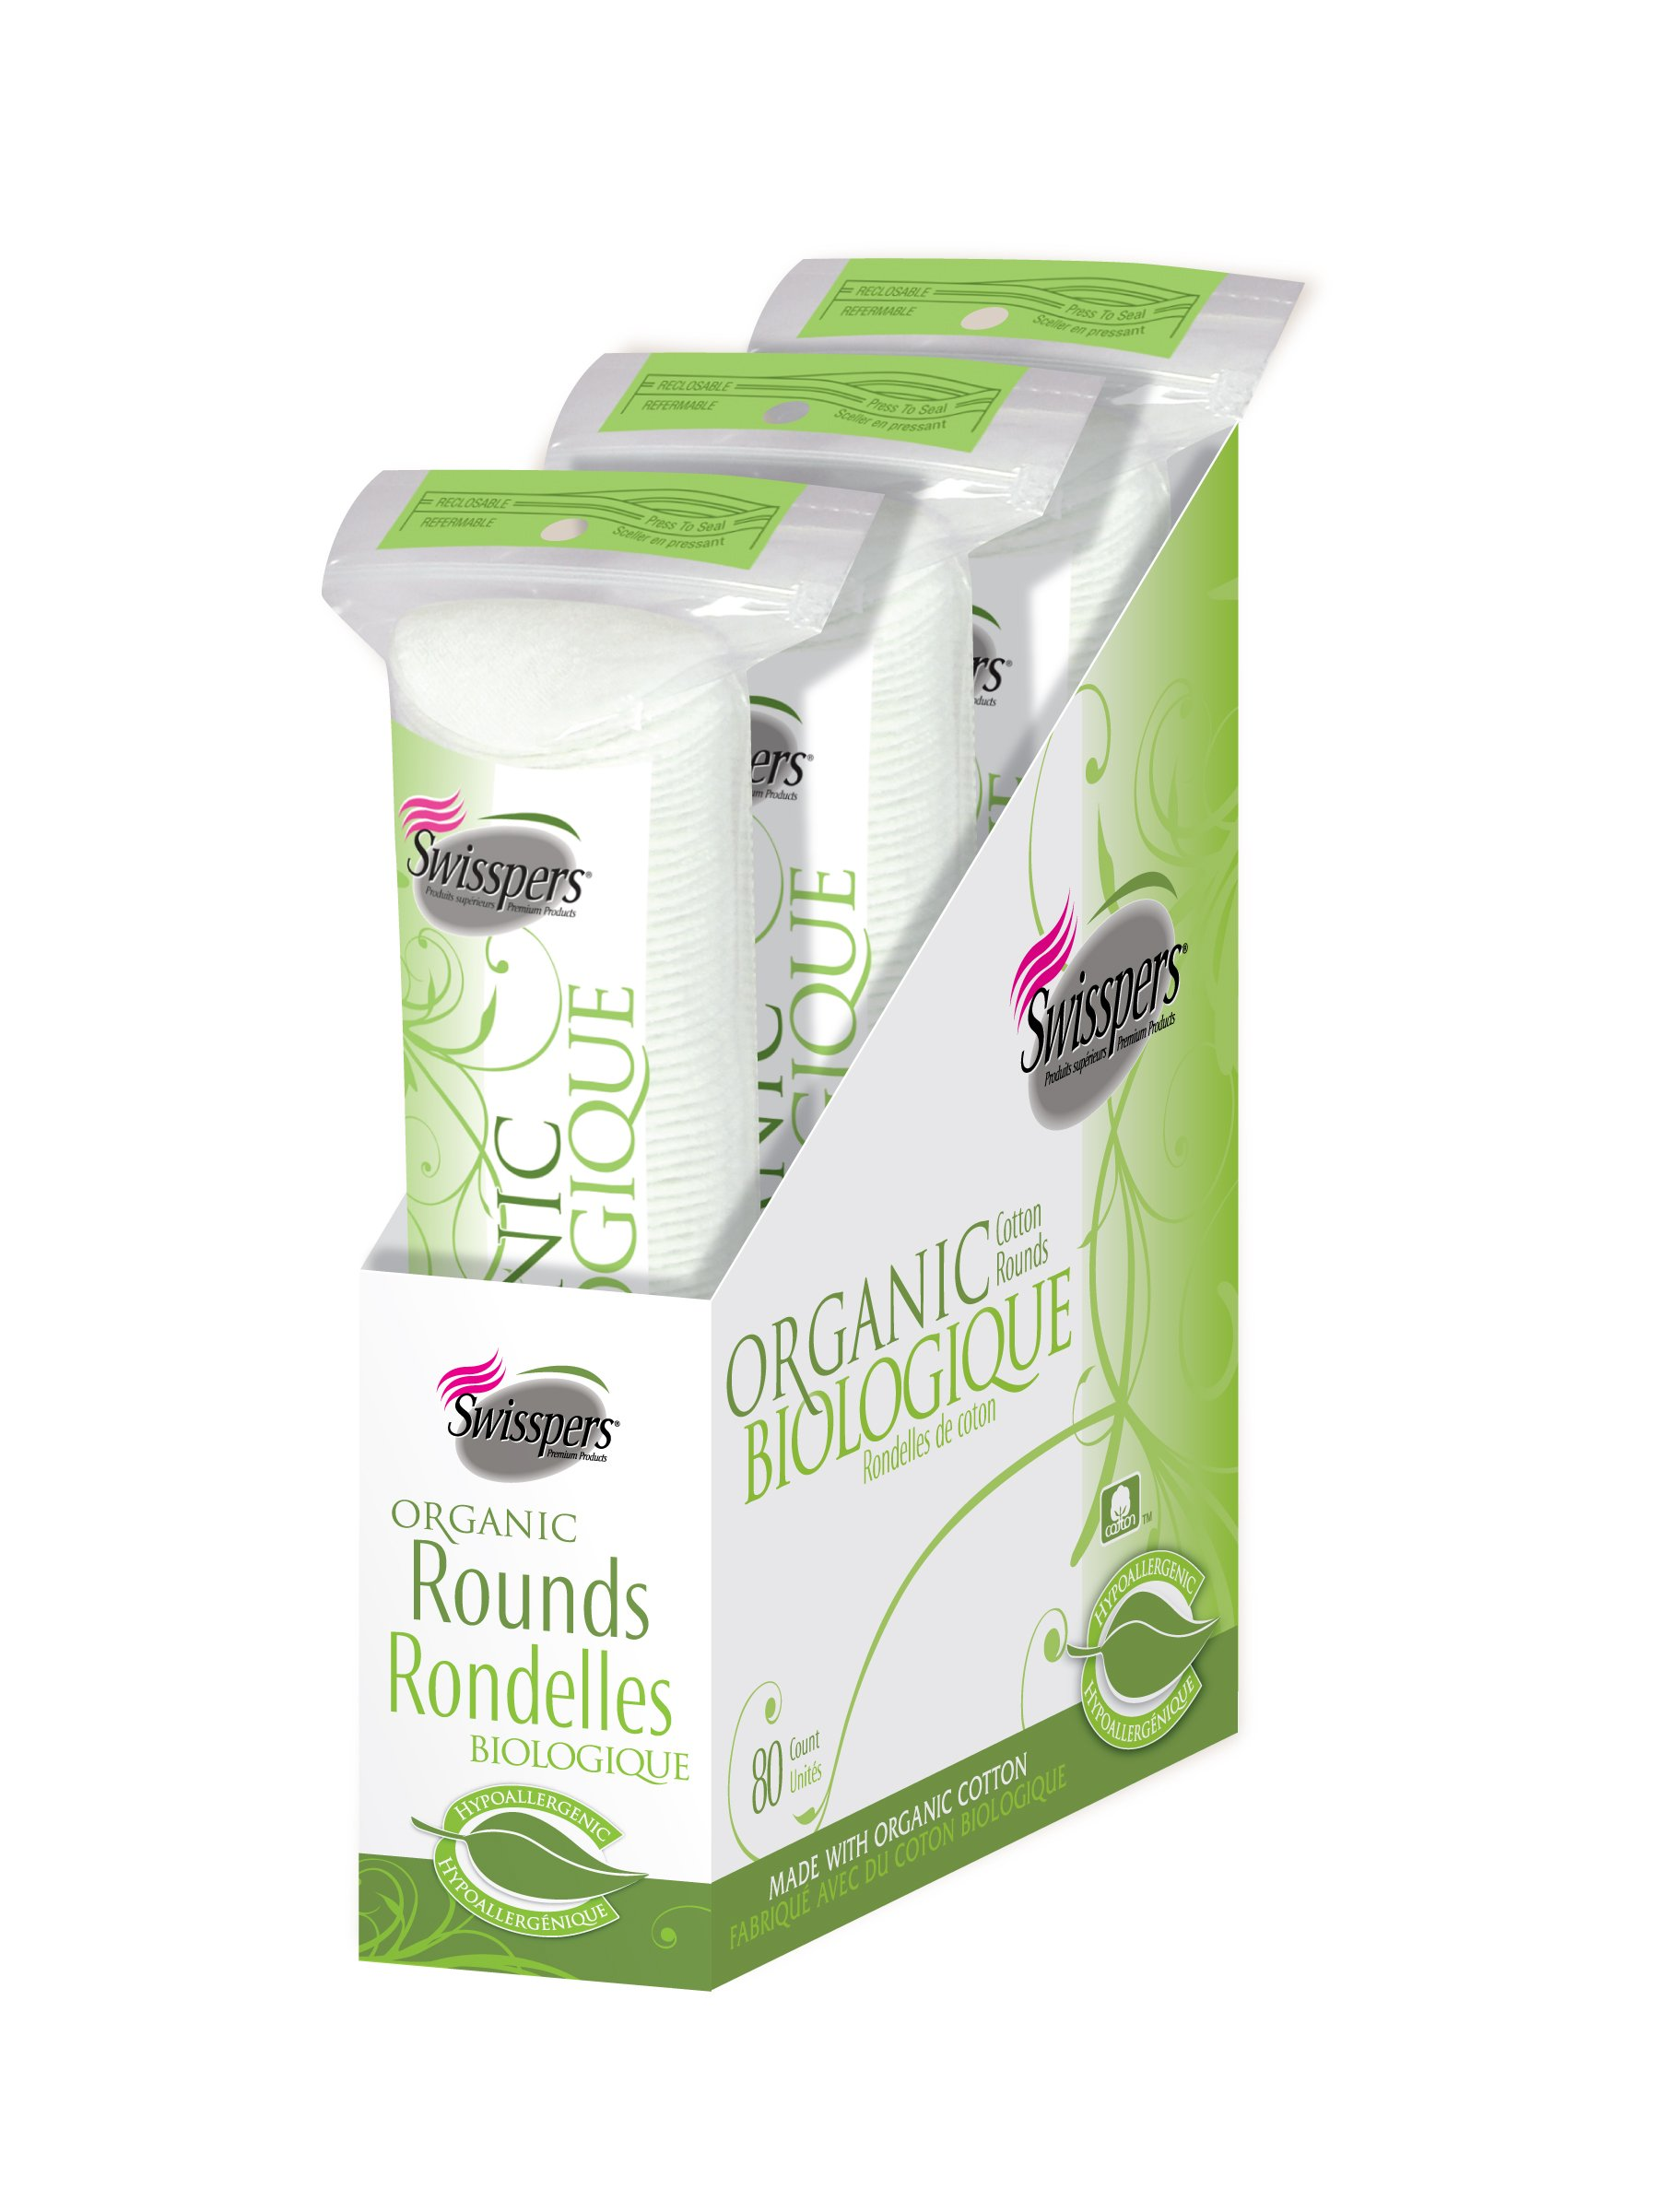 Swisspers Organic 100% Natural Organic Cotton Rounds, 80-Count Rounds per Pack, 3 Packs (240 Rounds Total)